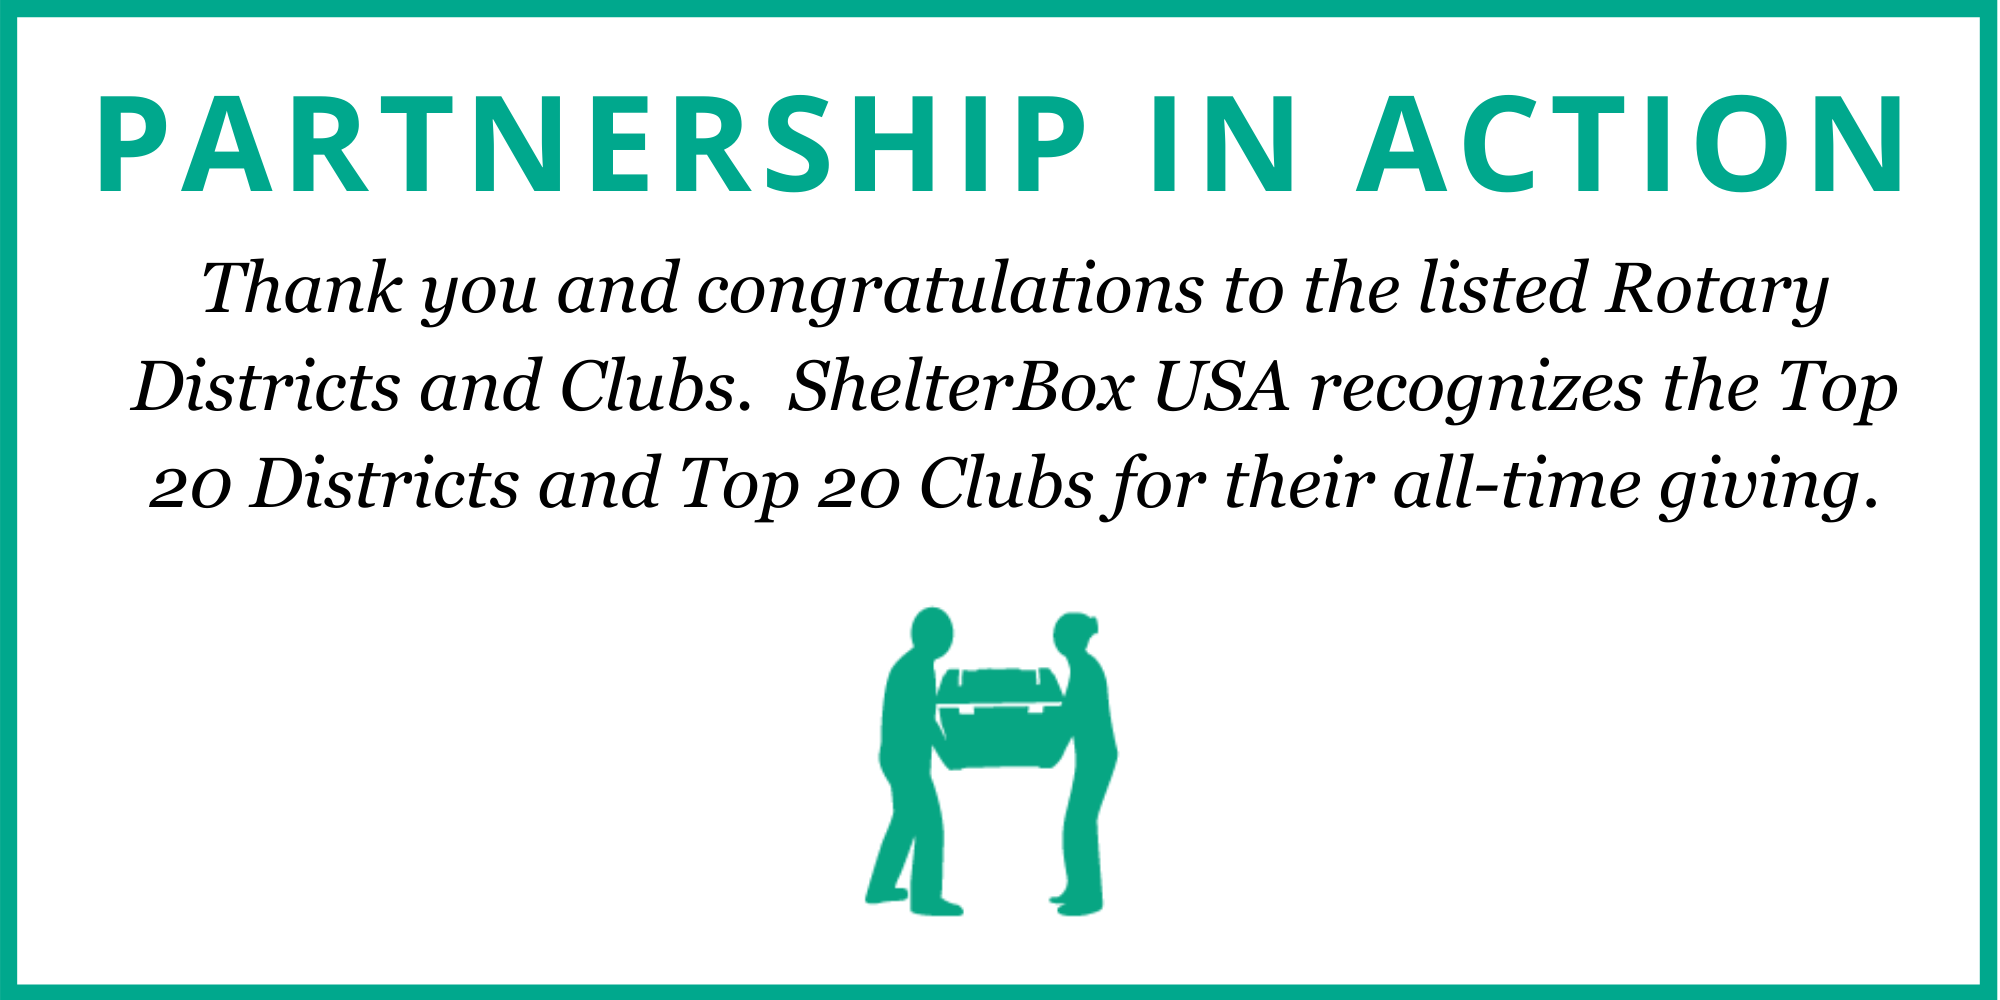 Thank you and congratulations to the listed Rotary Districts and Top 20 Clubs for their all-time giving